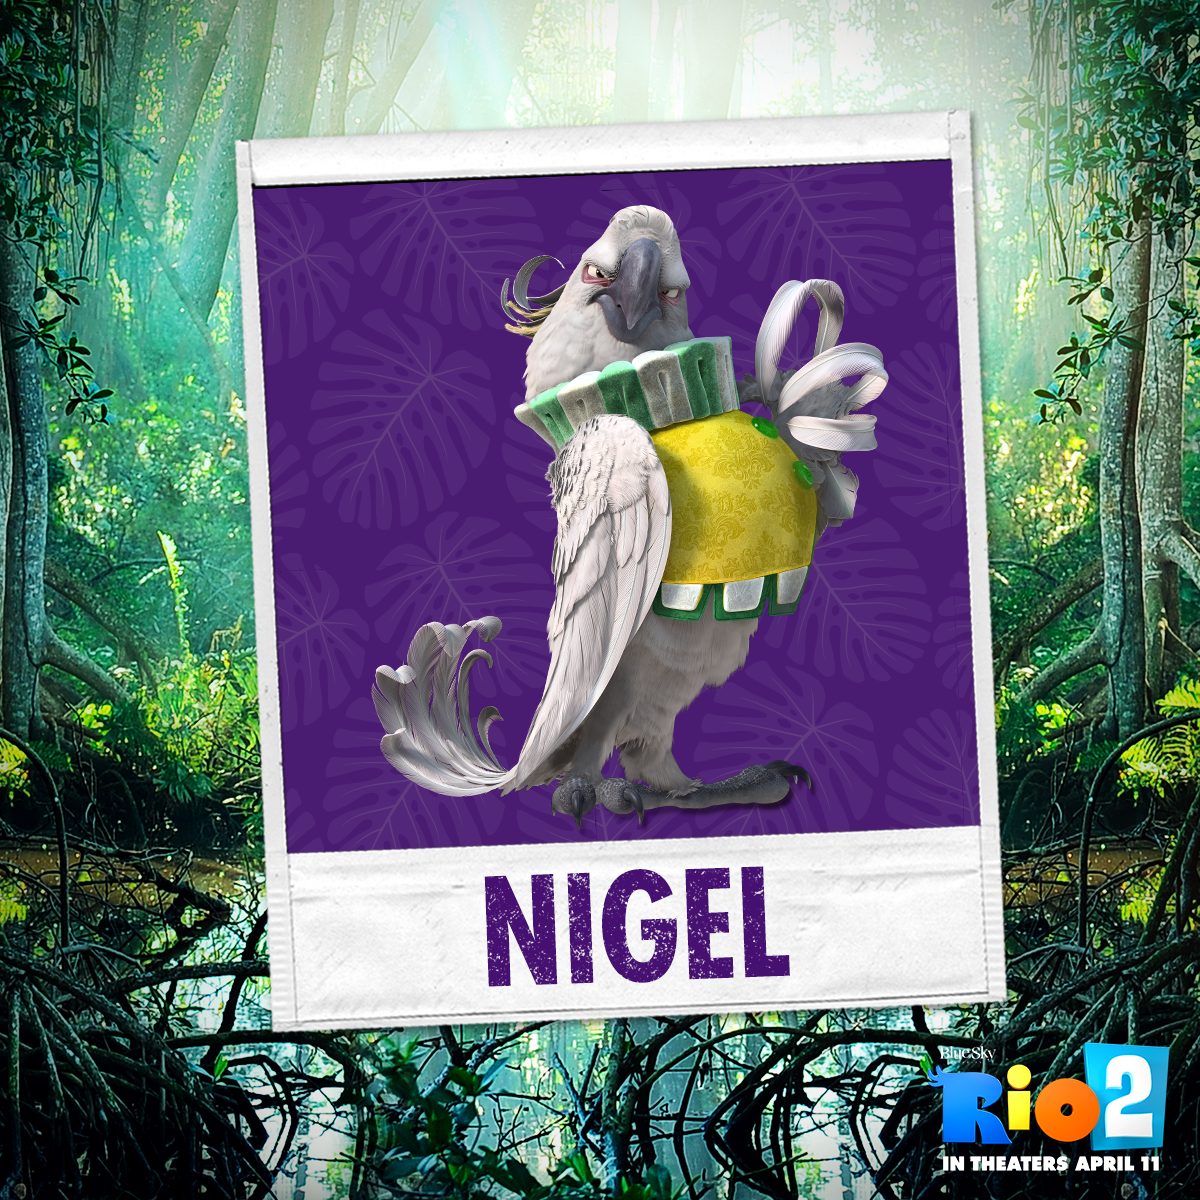 RT @RioMovie: Nigel is back, and this time he wants revenge. Tune in tomorrow for the FINAL #Rio2 trailer! http://t.co/7MXO40ePHu